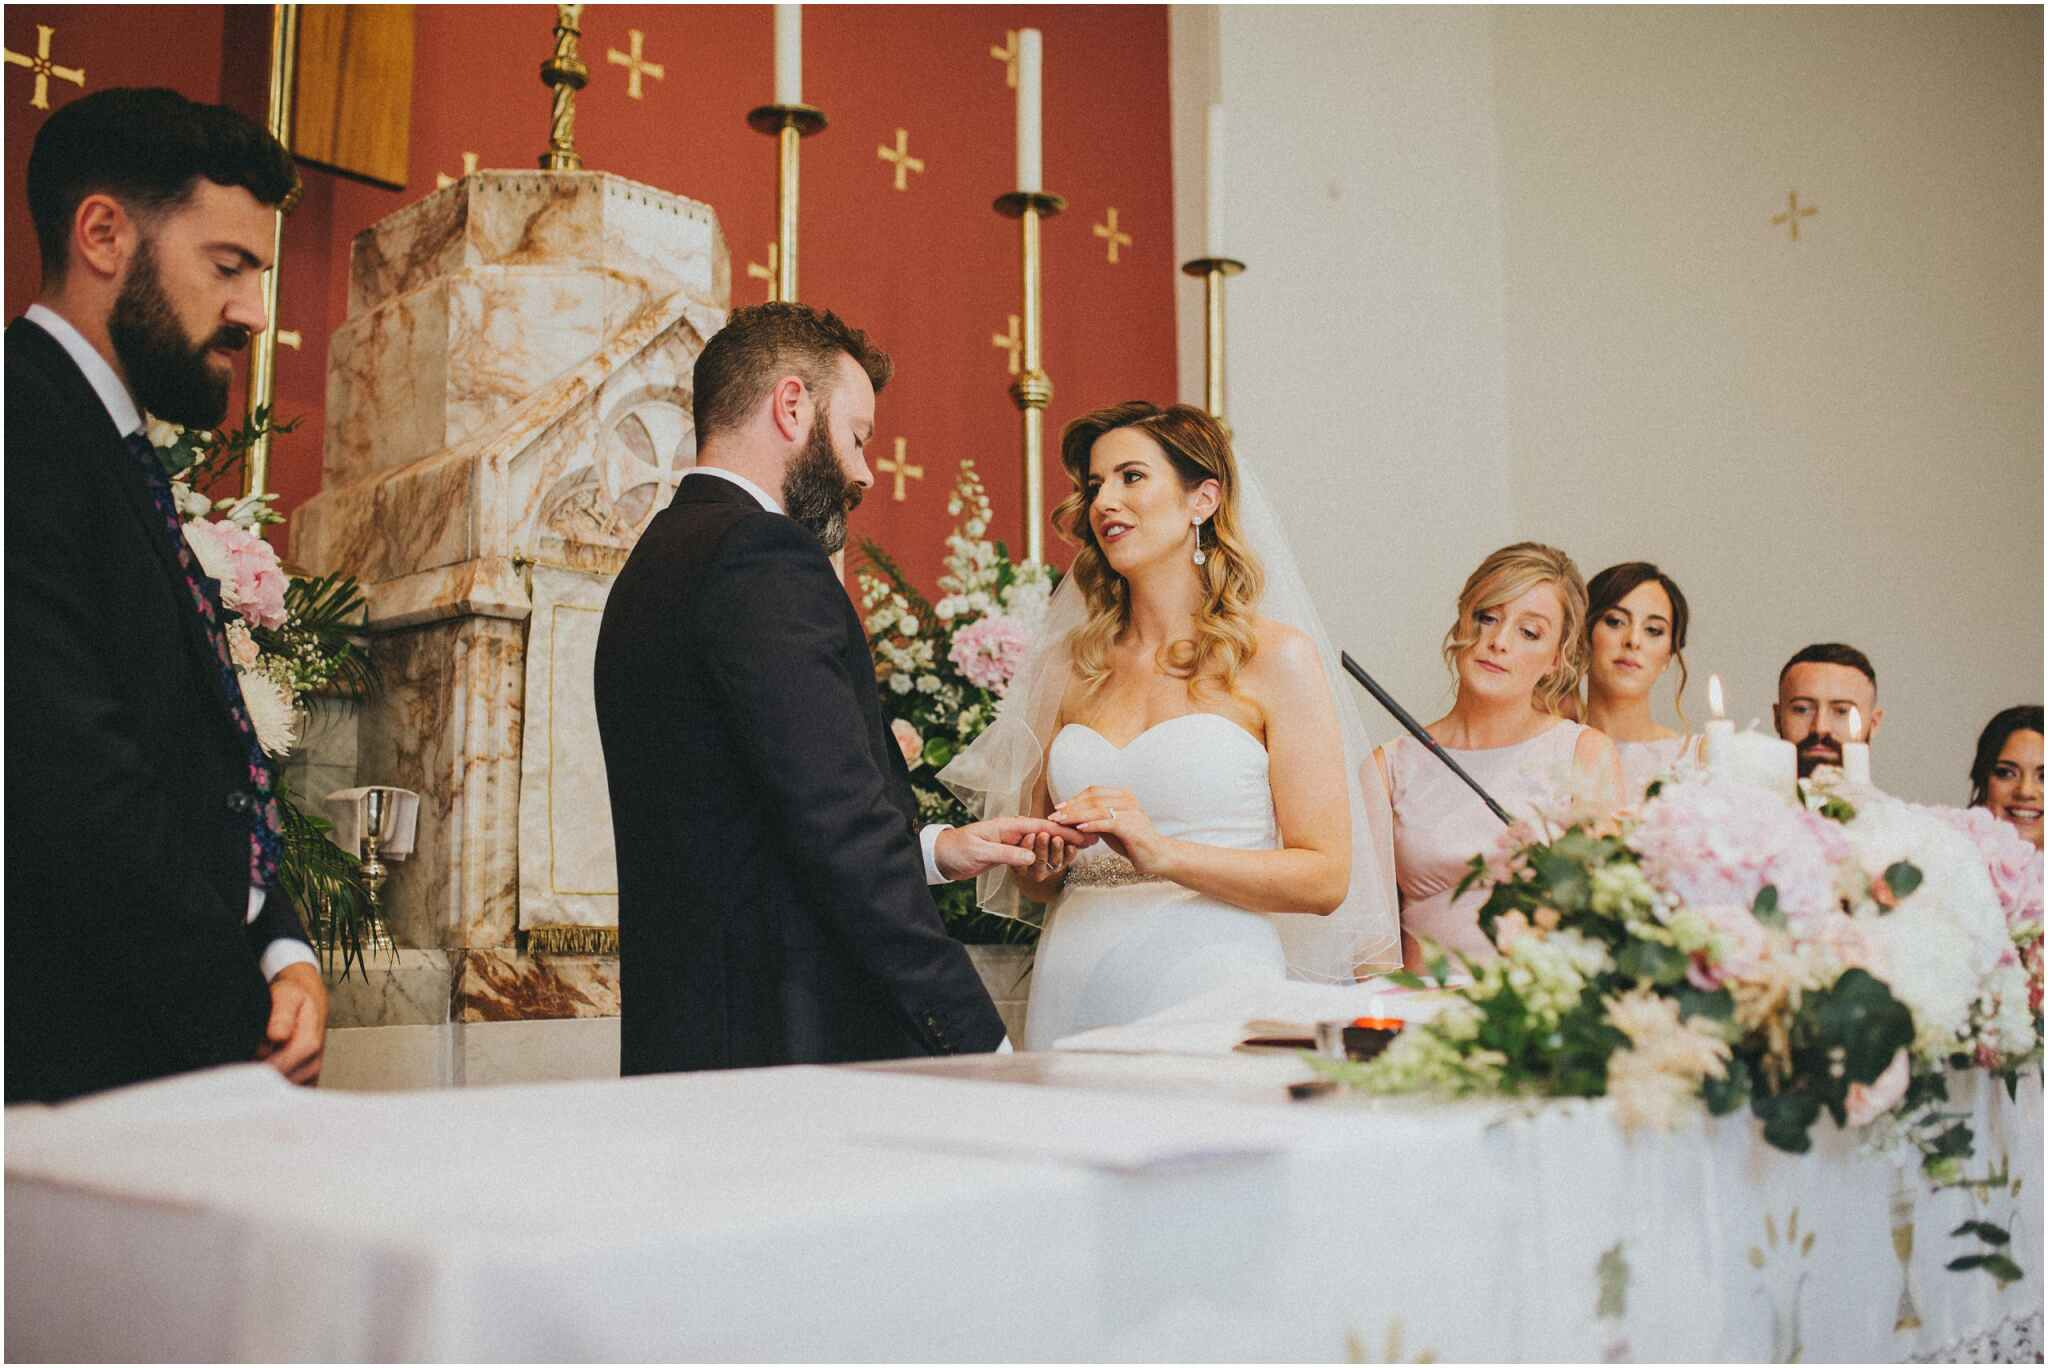 ballymagarvey village wedding 00072 - Fun and Relaxed wedding and elopement photography in Ireland, perfect for adventurous and outdoorsy couples